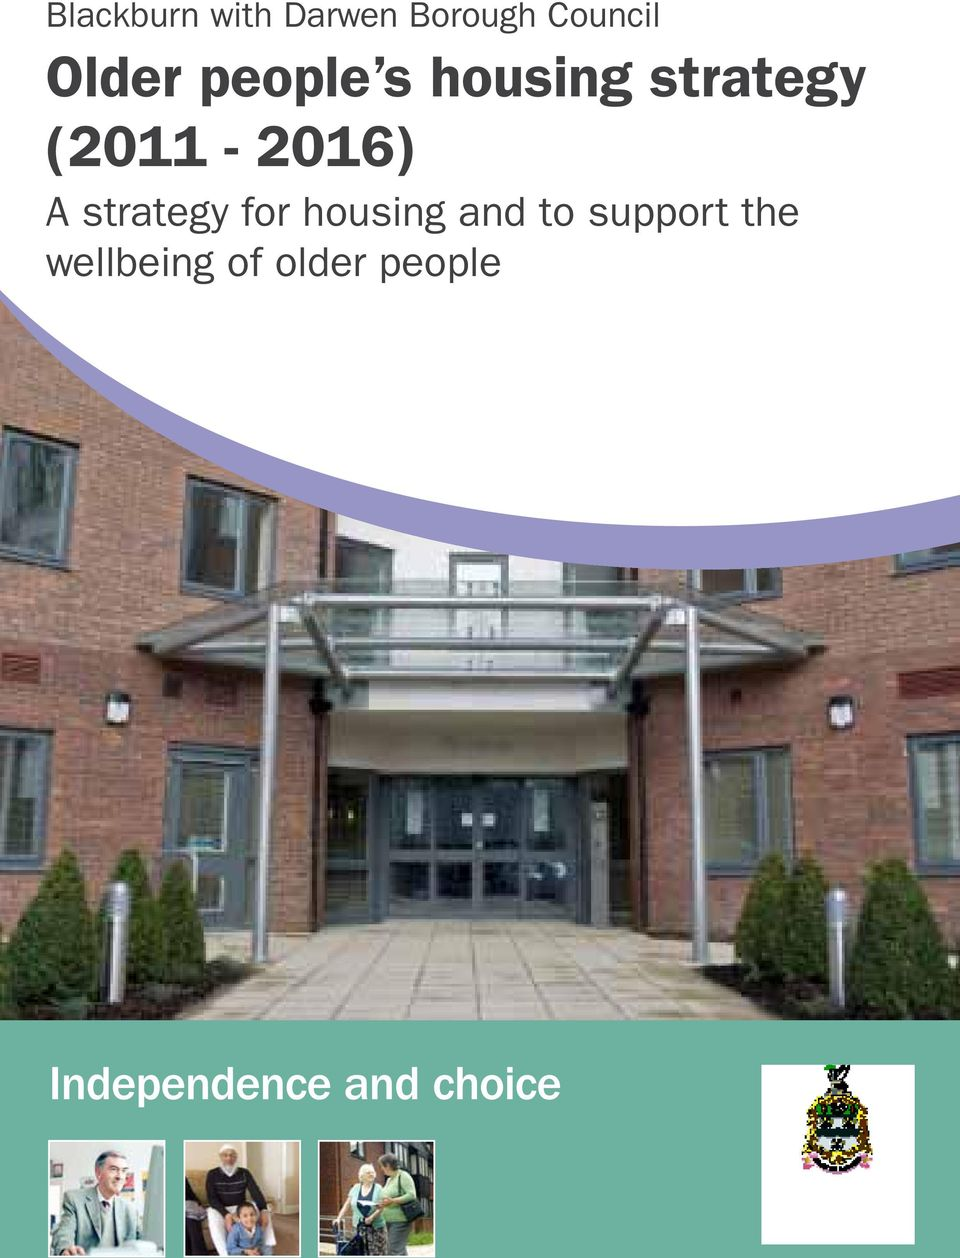 strategy (2011-2016) A strategy for housing and to